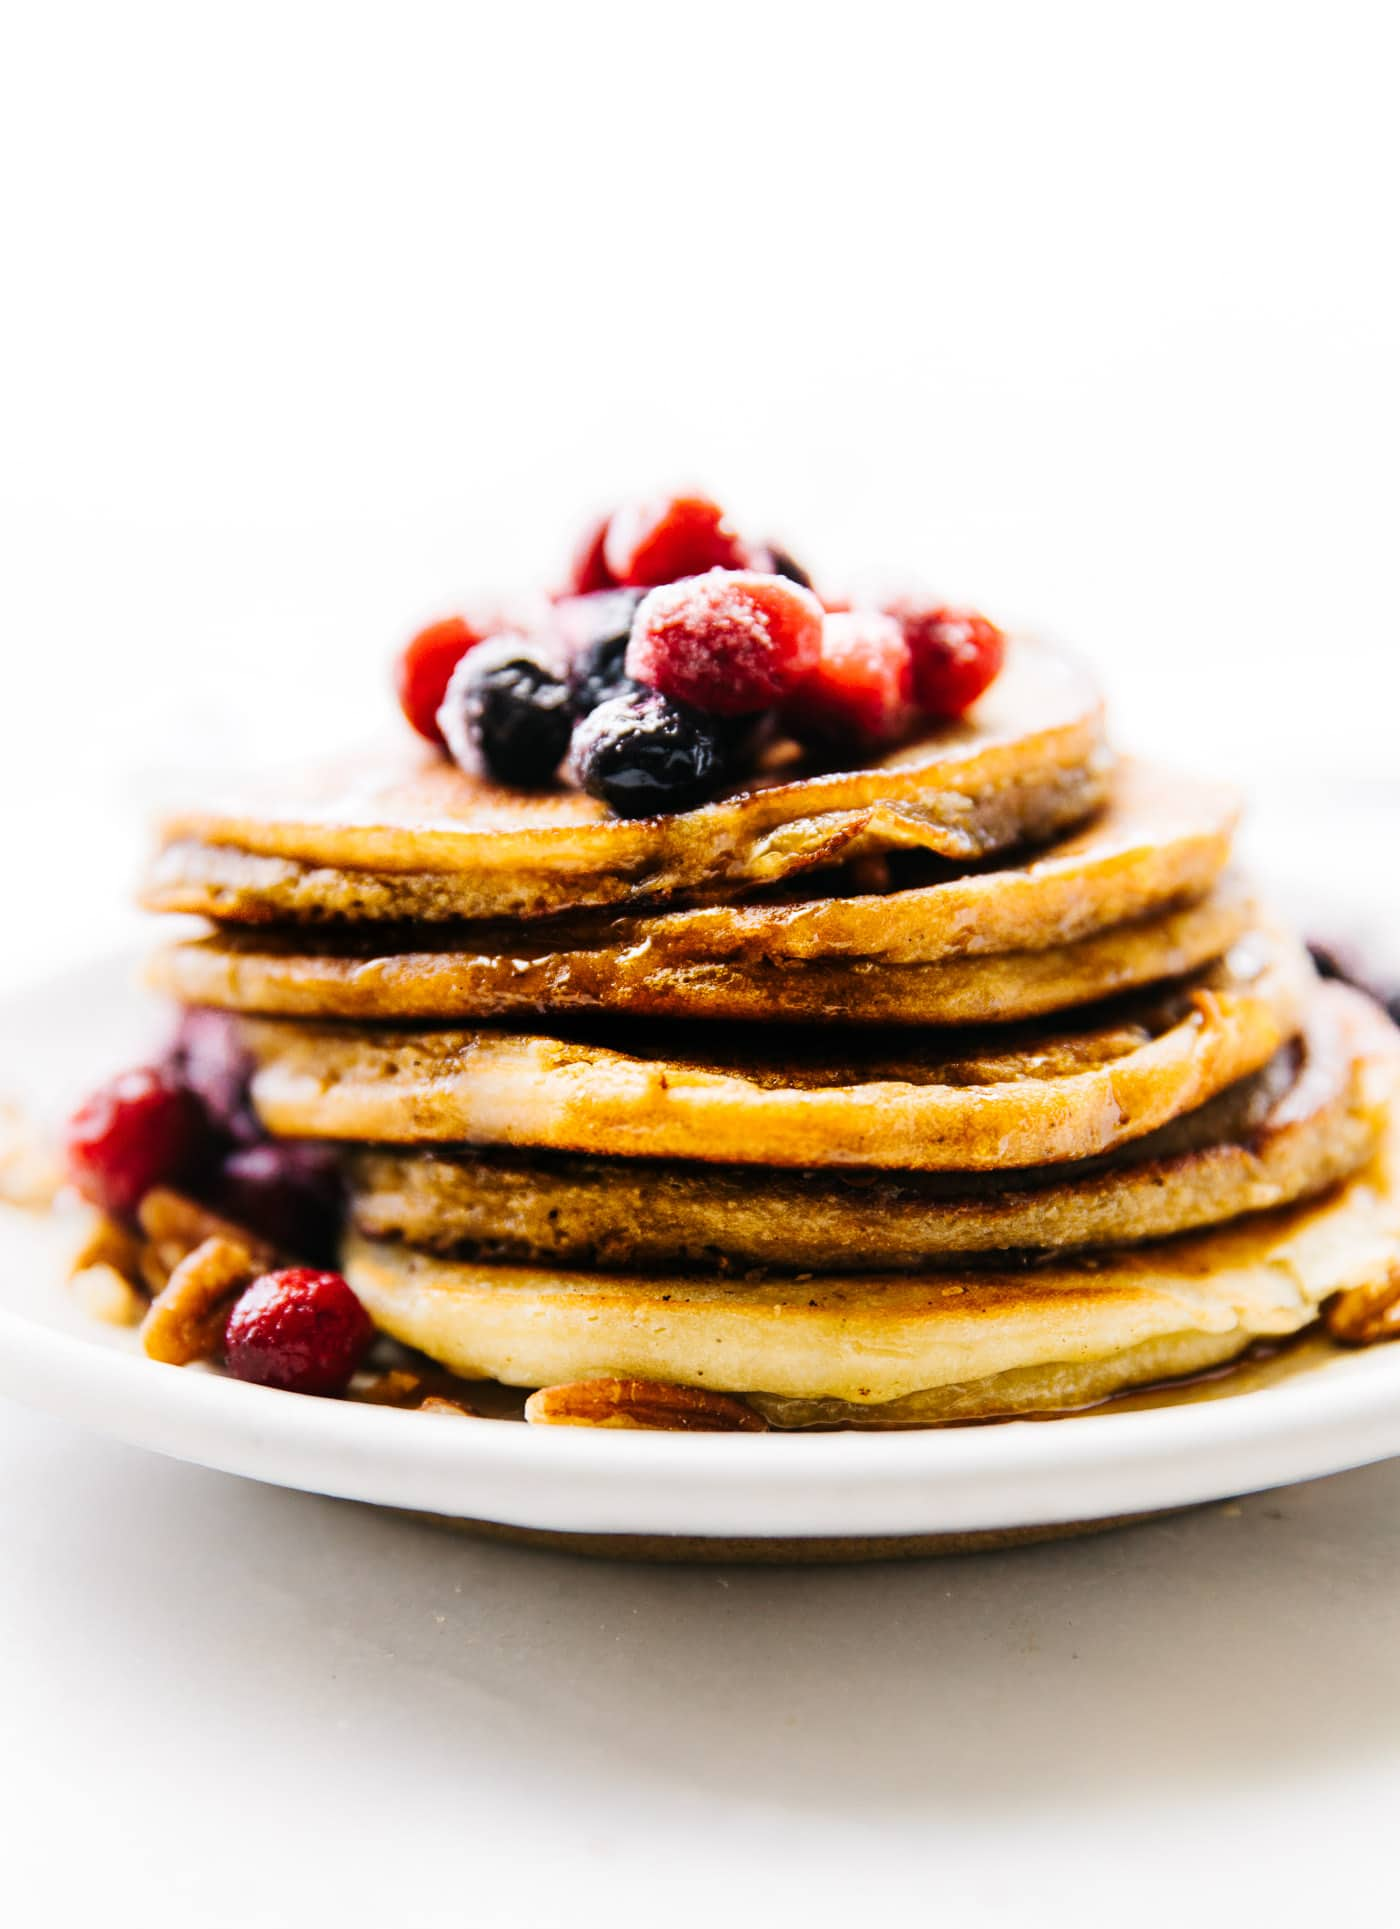 side view - stack of low carb pancakes made with coconut flour